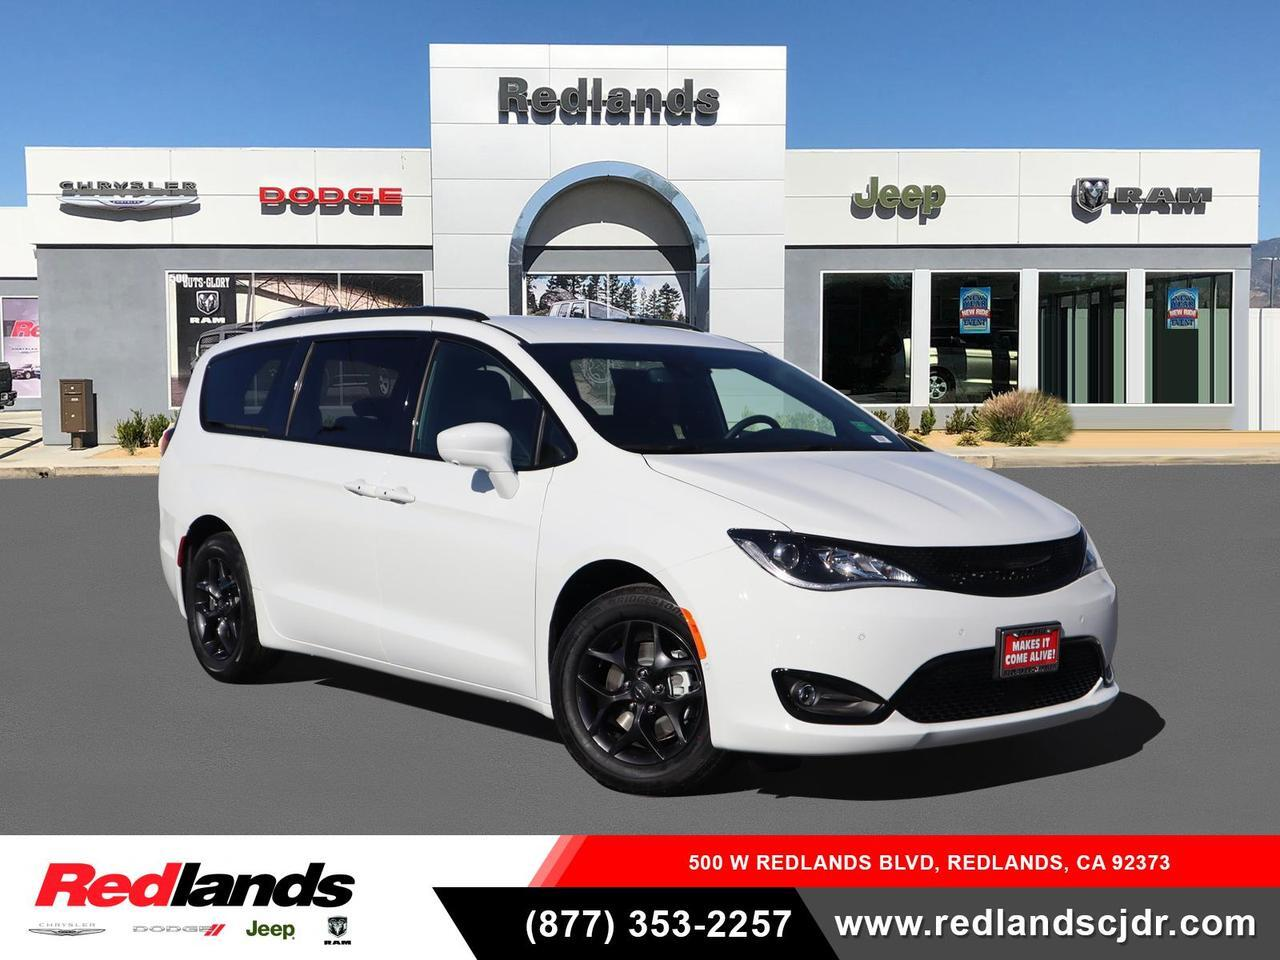 2020 Chrysler Pacifica TOURING L Redlands CA